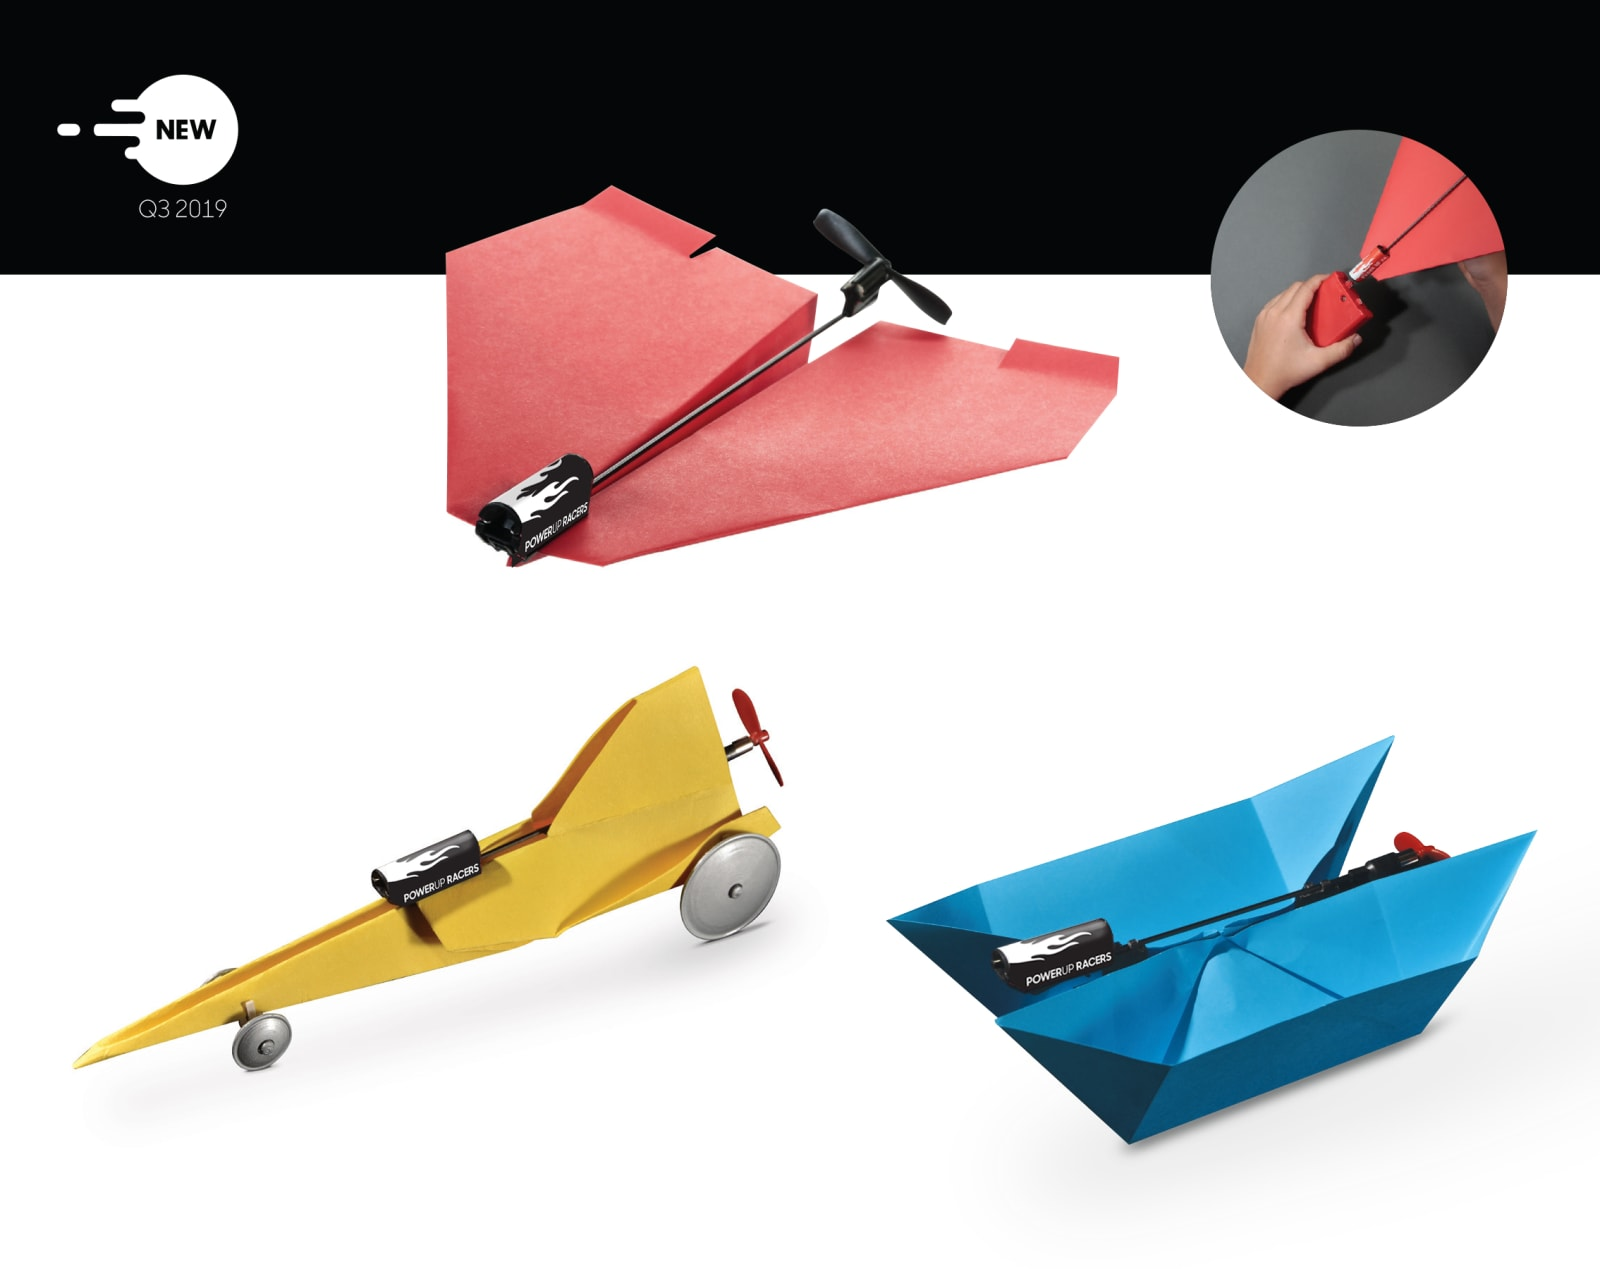 LONG DISTANCE PAPER AIRPLANE - How to make a Paper Airplane that ... | 1269x1600